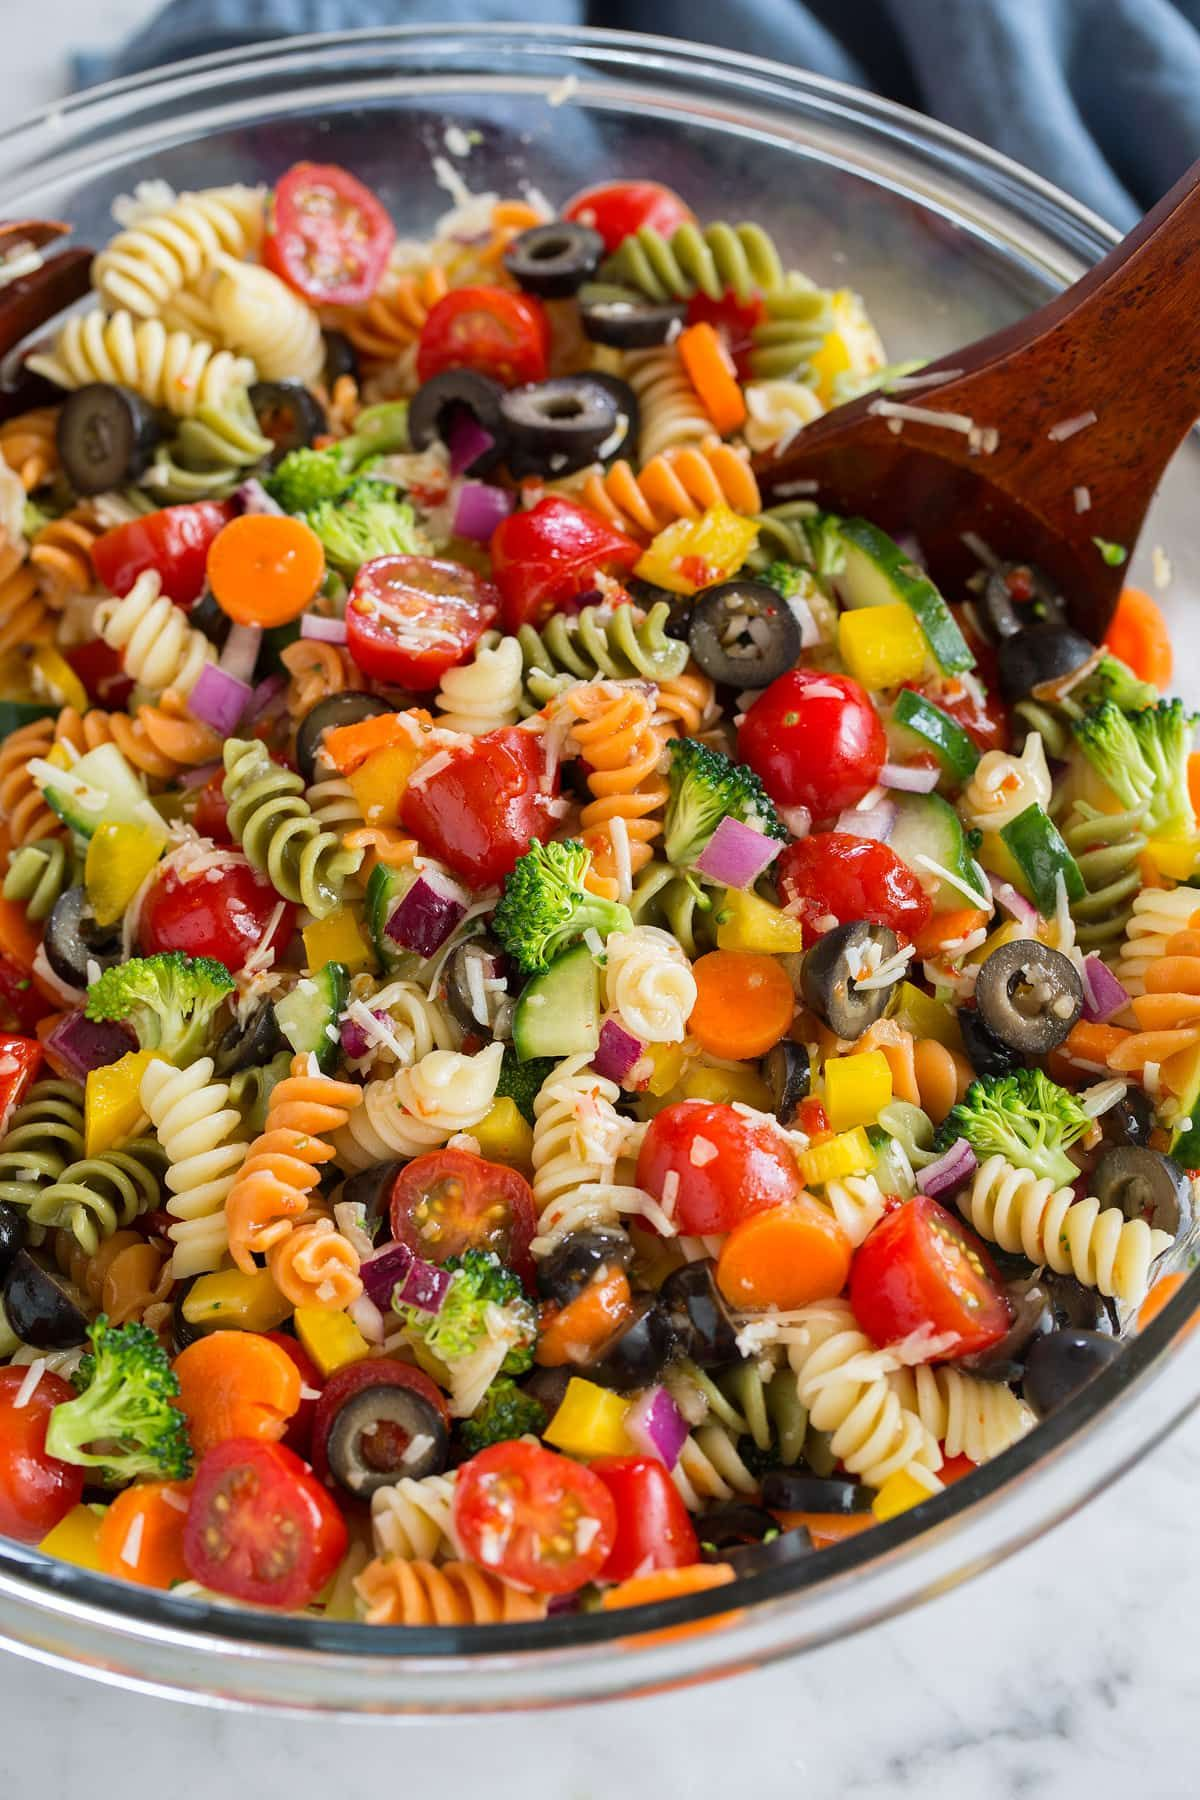 Pasta Salad is one of those staple recipes that's been around for as long as we can remember, and for good reason — it's amazingly delicious! This veggie packed version is easy thanks to the shortcut of zest bottled Italian salad dressing. #pasta #potluck #pastasalad #salad #sidedish #vegetarian #easy #familyfriendly